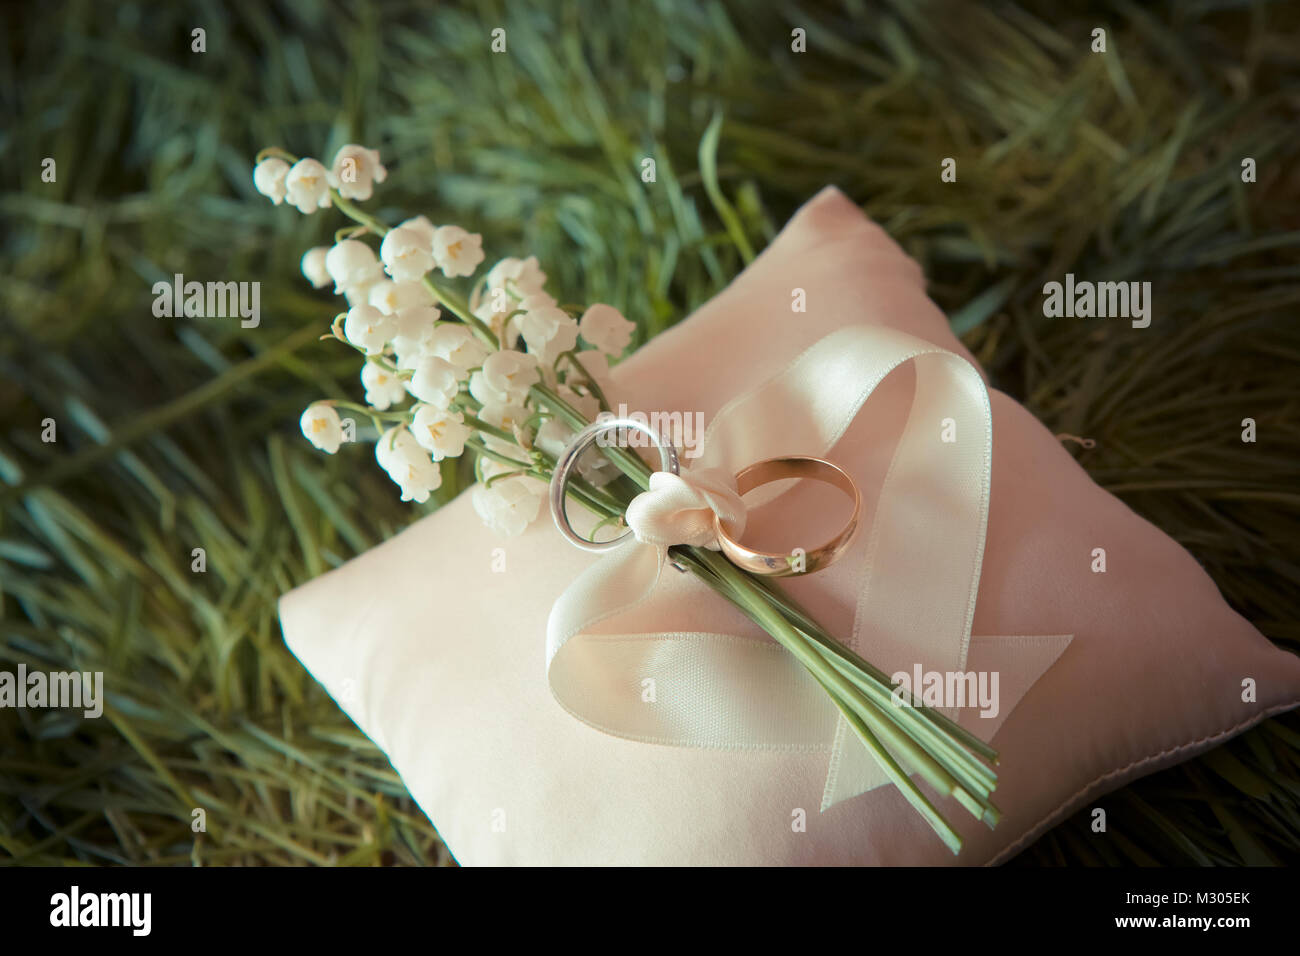 White Gold Wedding Rings With A Bouquet Stock Photo 173951979 Alamy